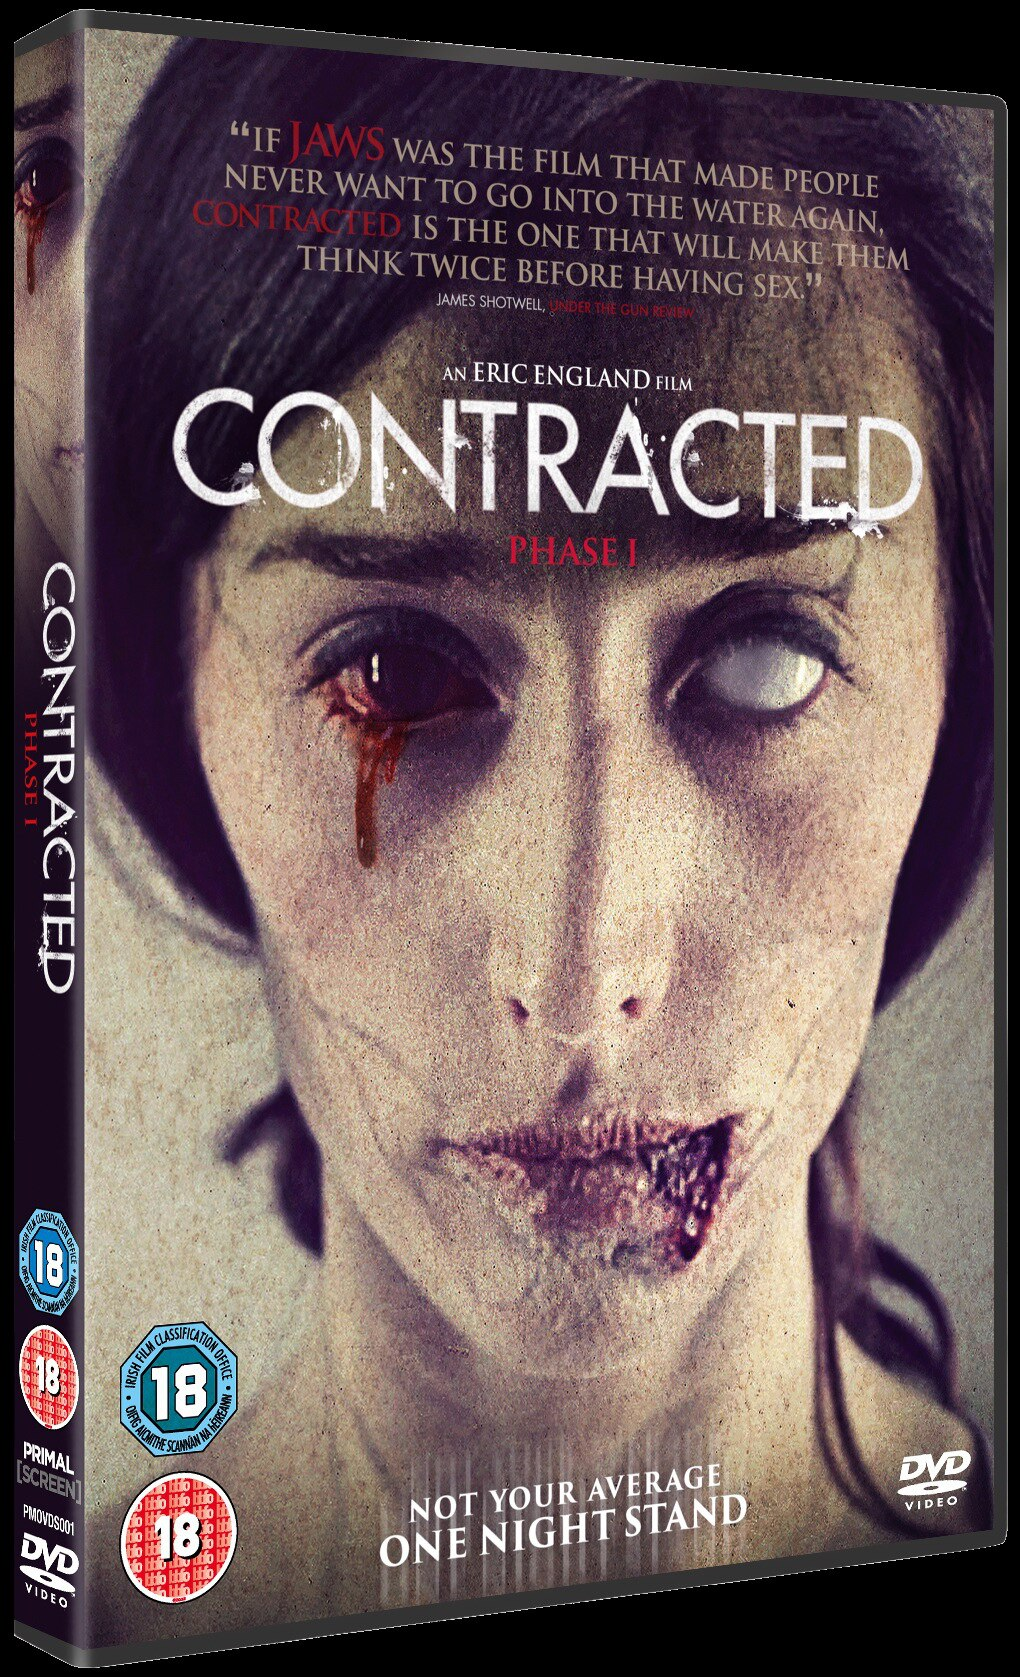 Contracted Phase I Image